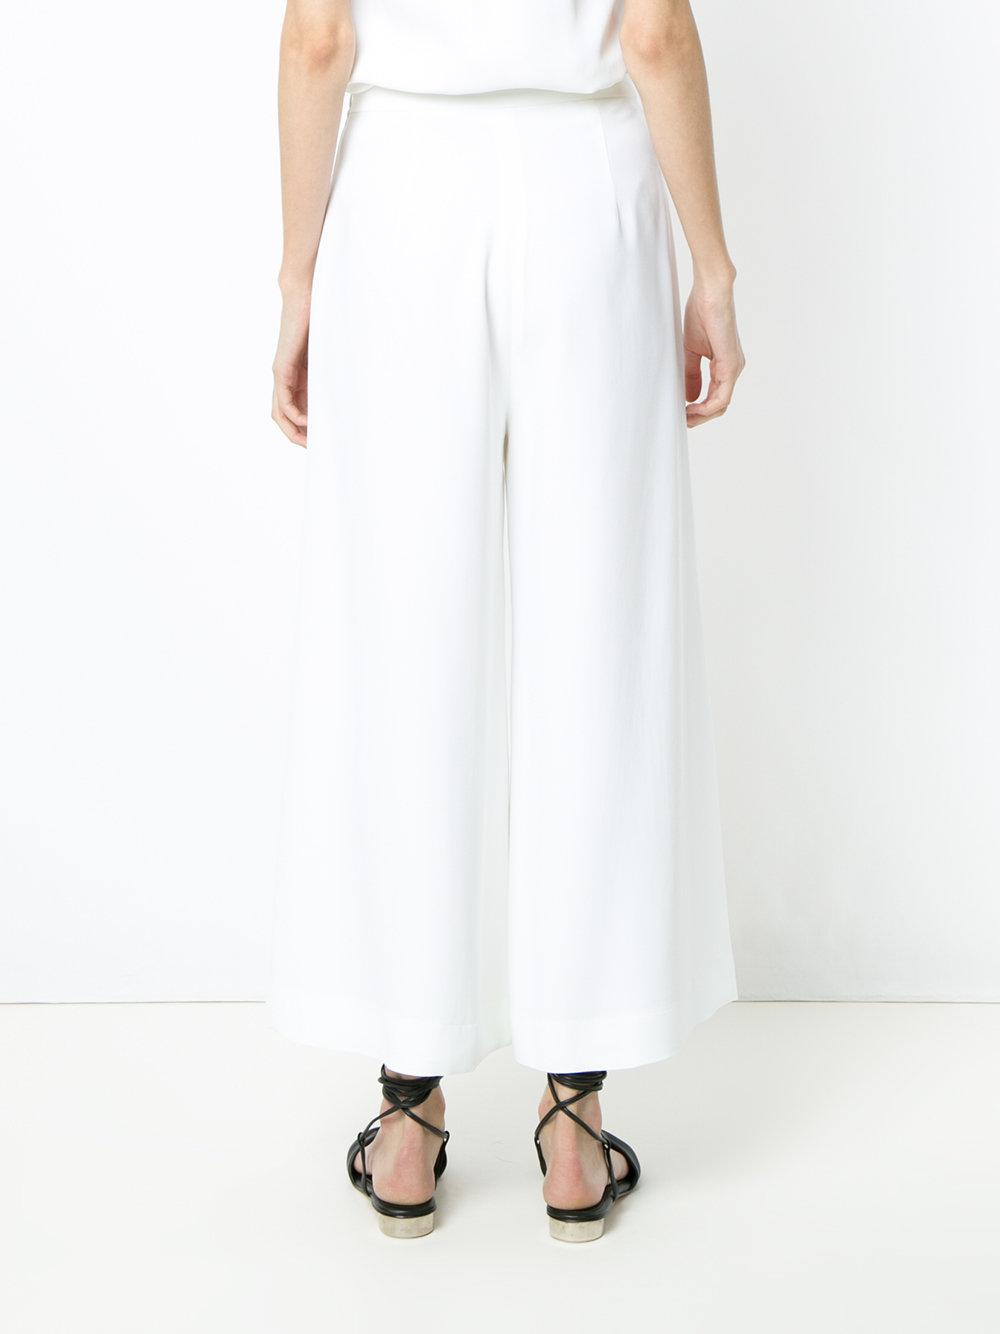 wide leg cropped trousers - White Andrea Marques fsZSMhFkh9